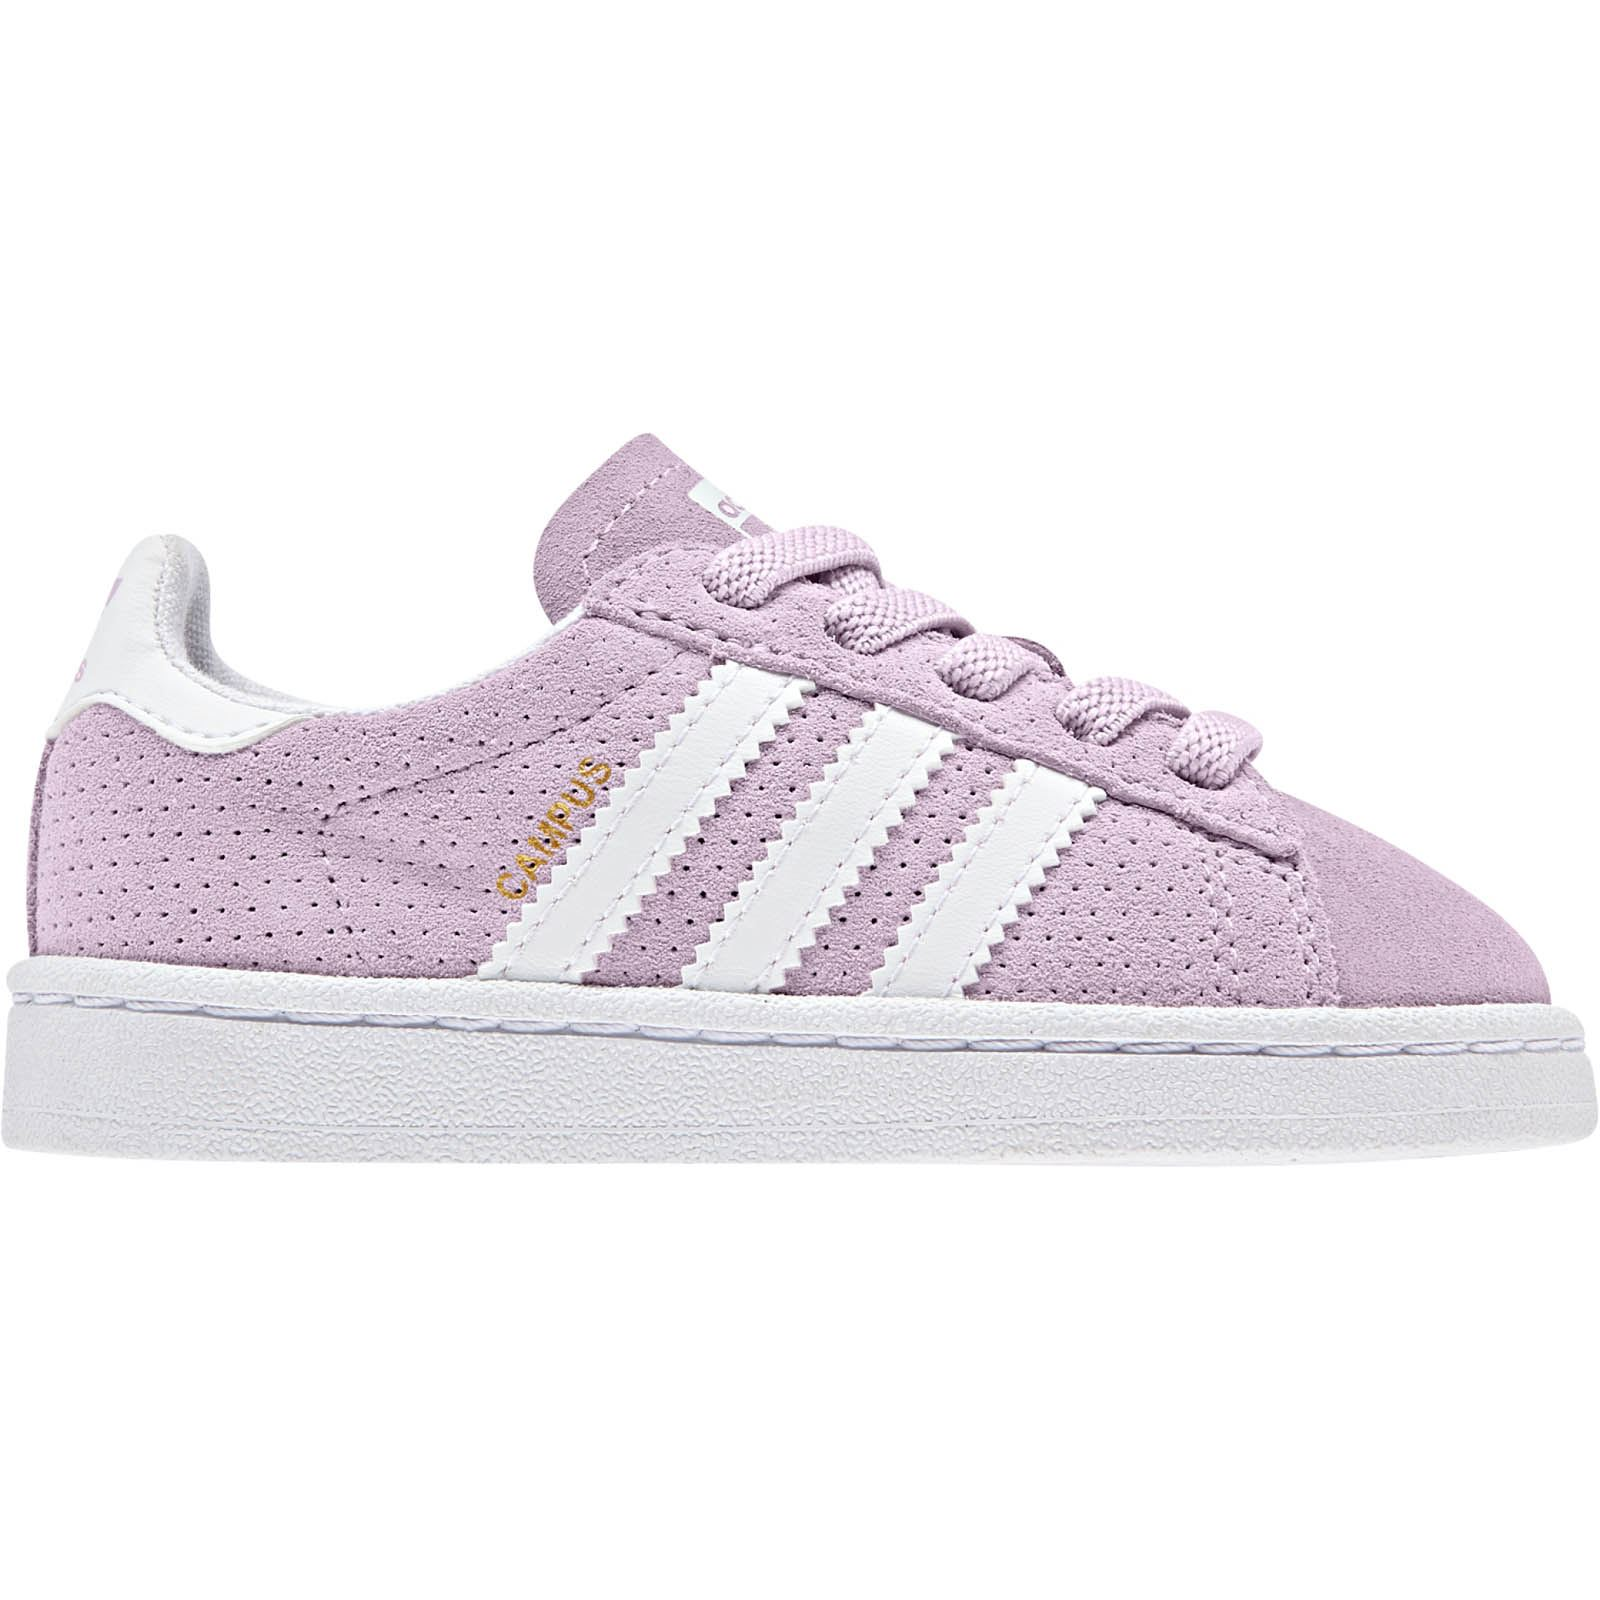 Adidas Originals Campus El I - Sneakers en cuir - rose